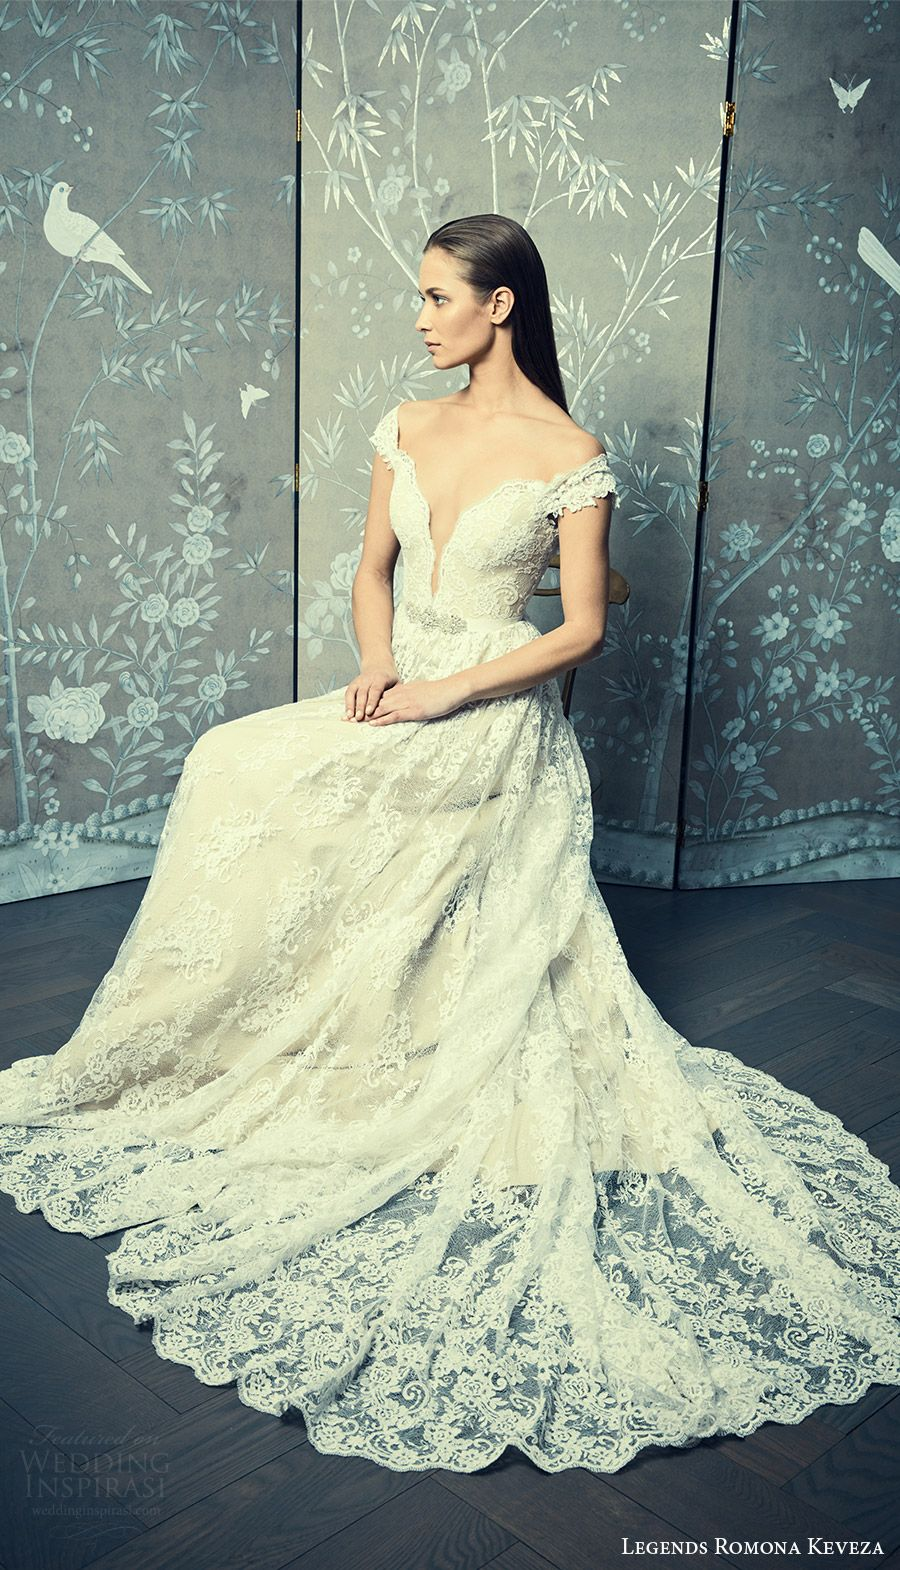 Legends romona keveza spring wedding dresses wedding and